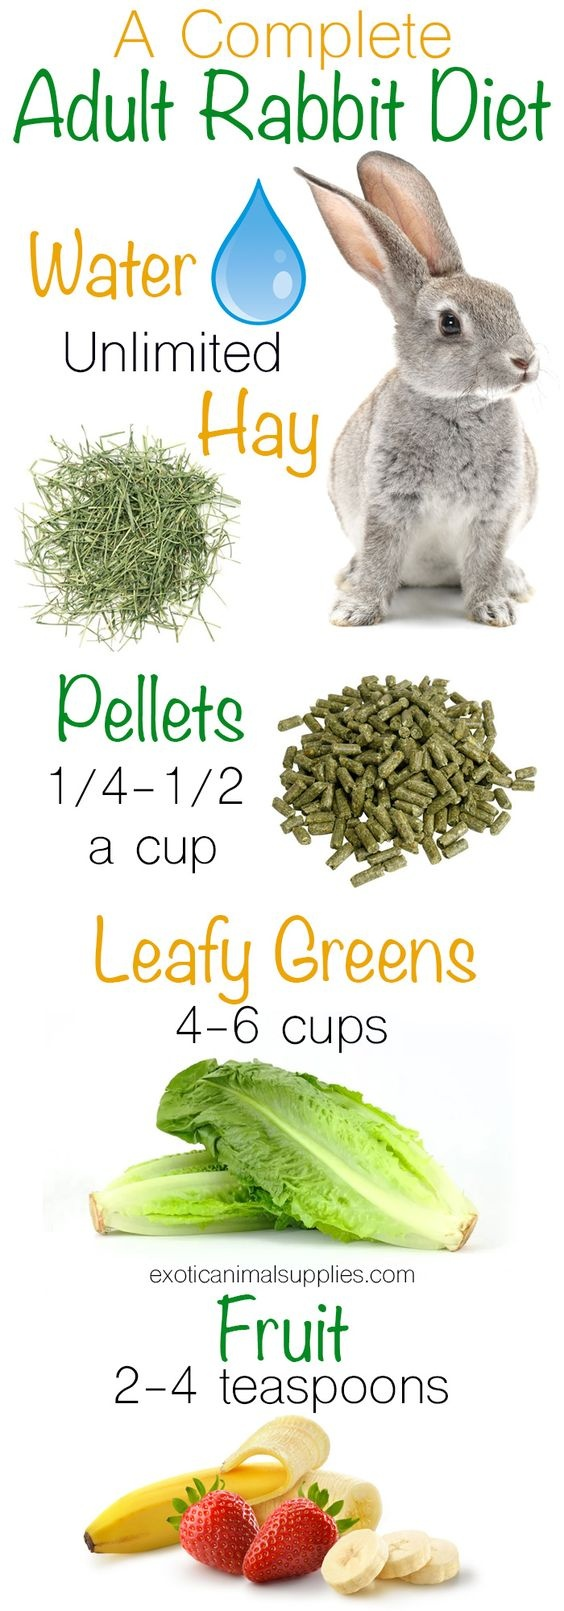 what foods can rabbits eat and not eat